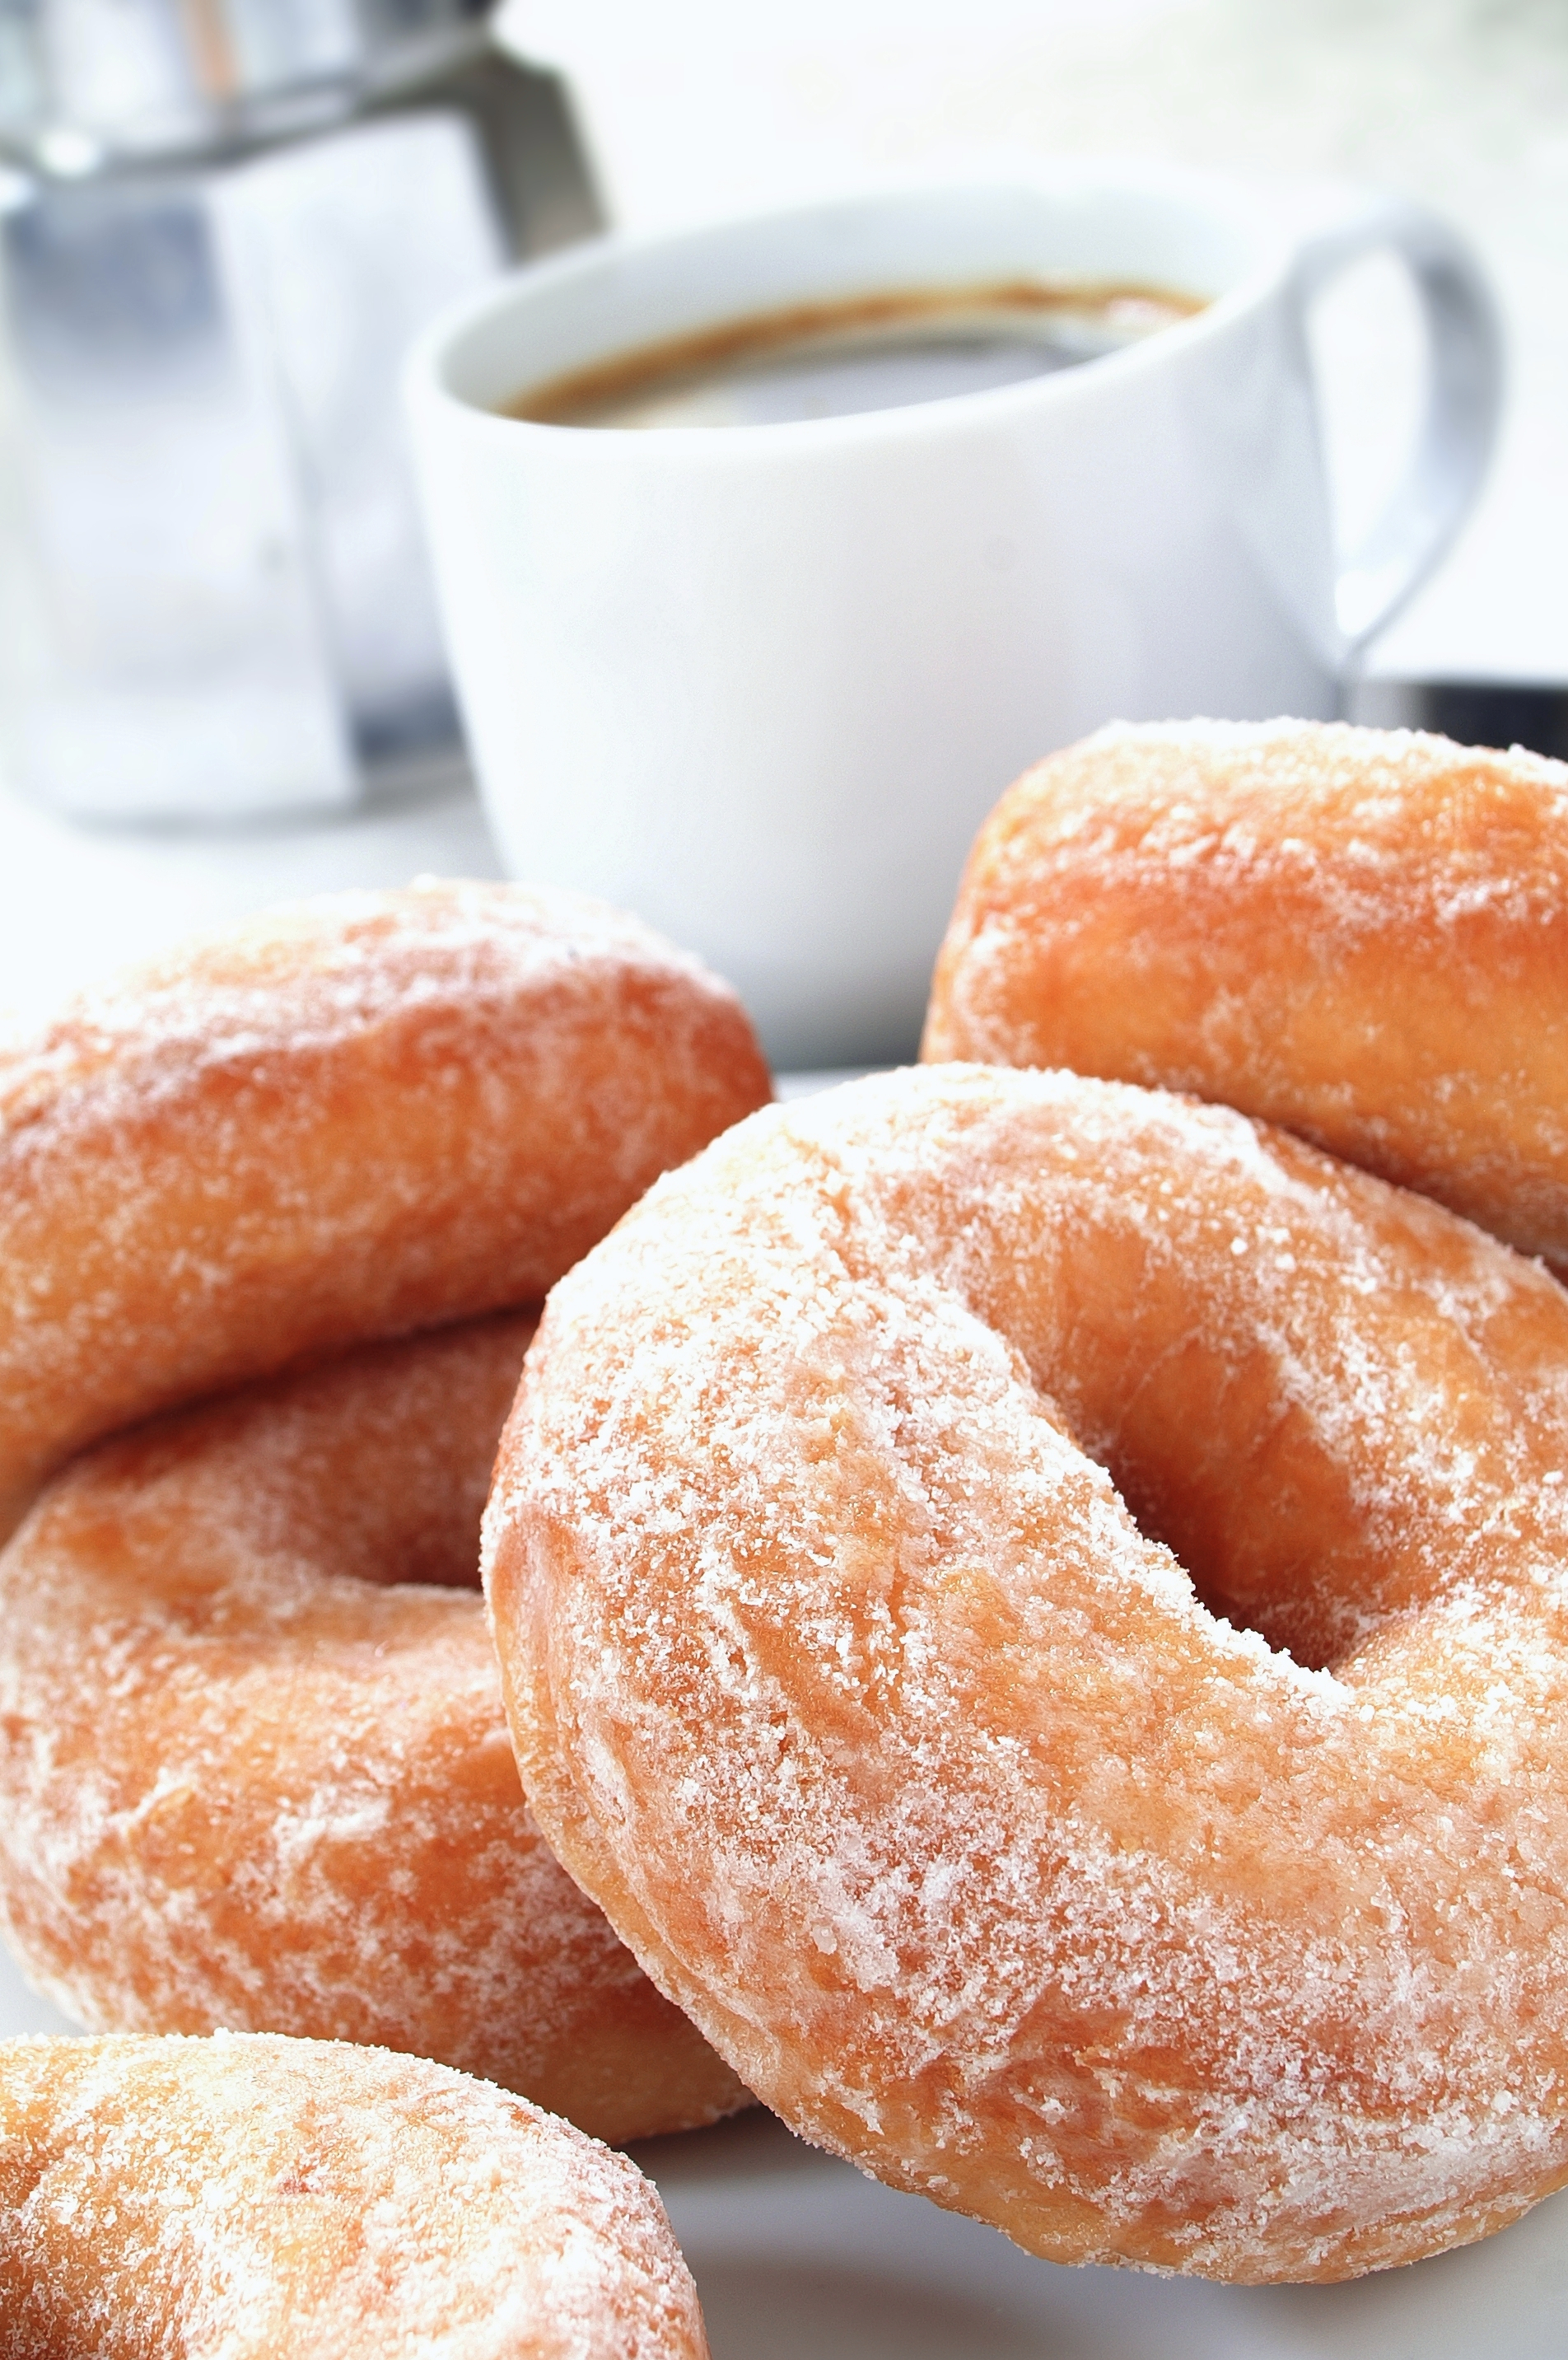 Bring the donuts on your first day. Make an impressionn!